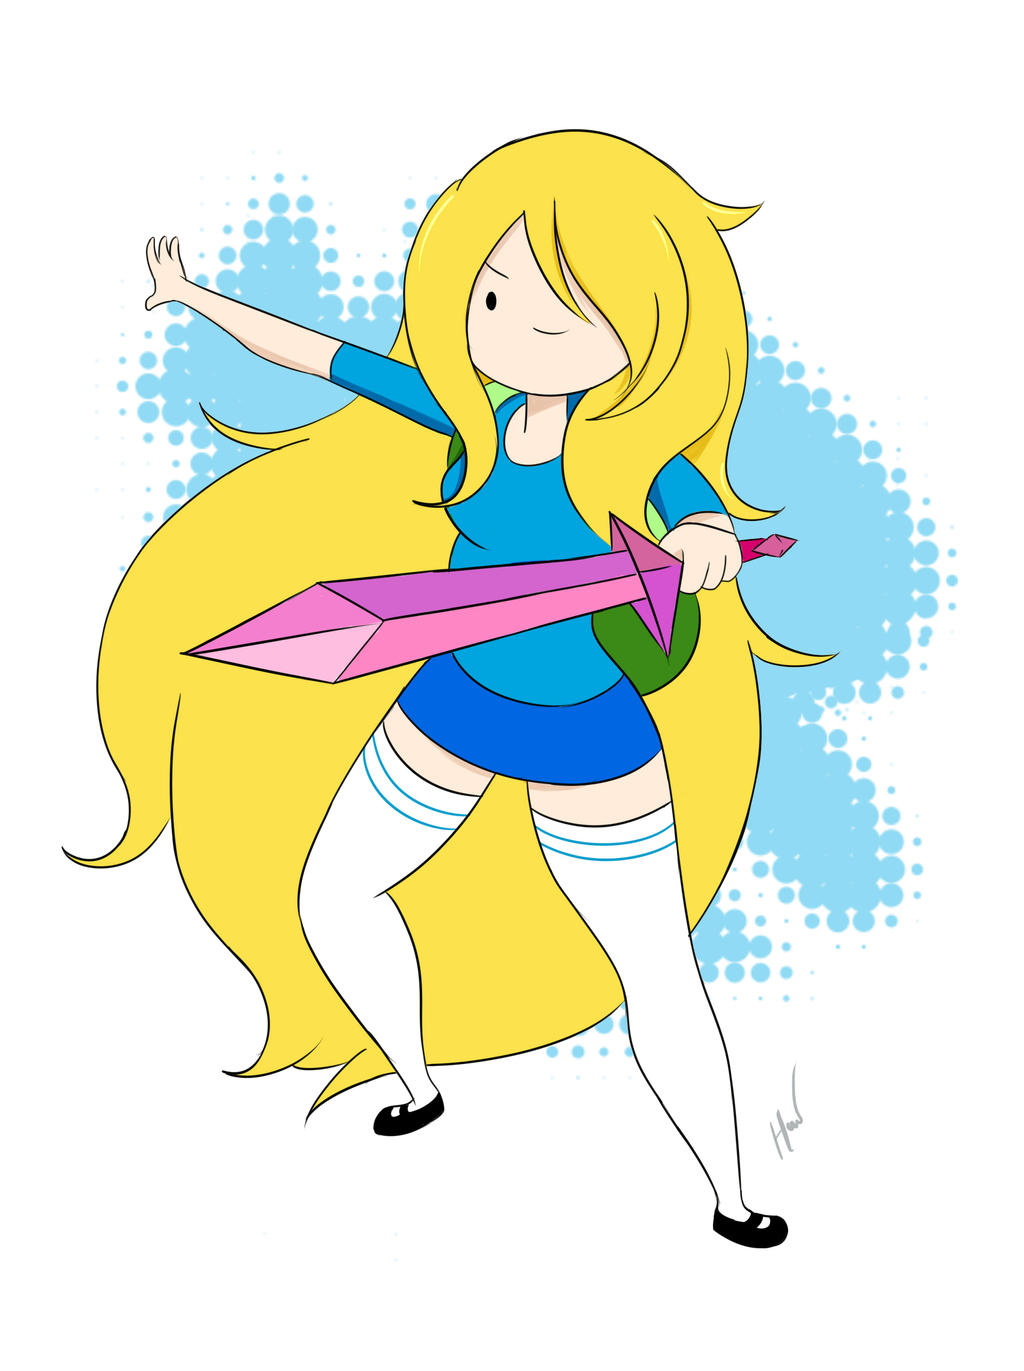 Fionna fanart by Hoho-art